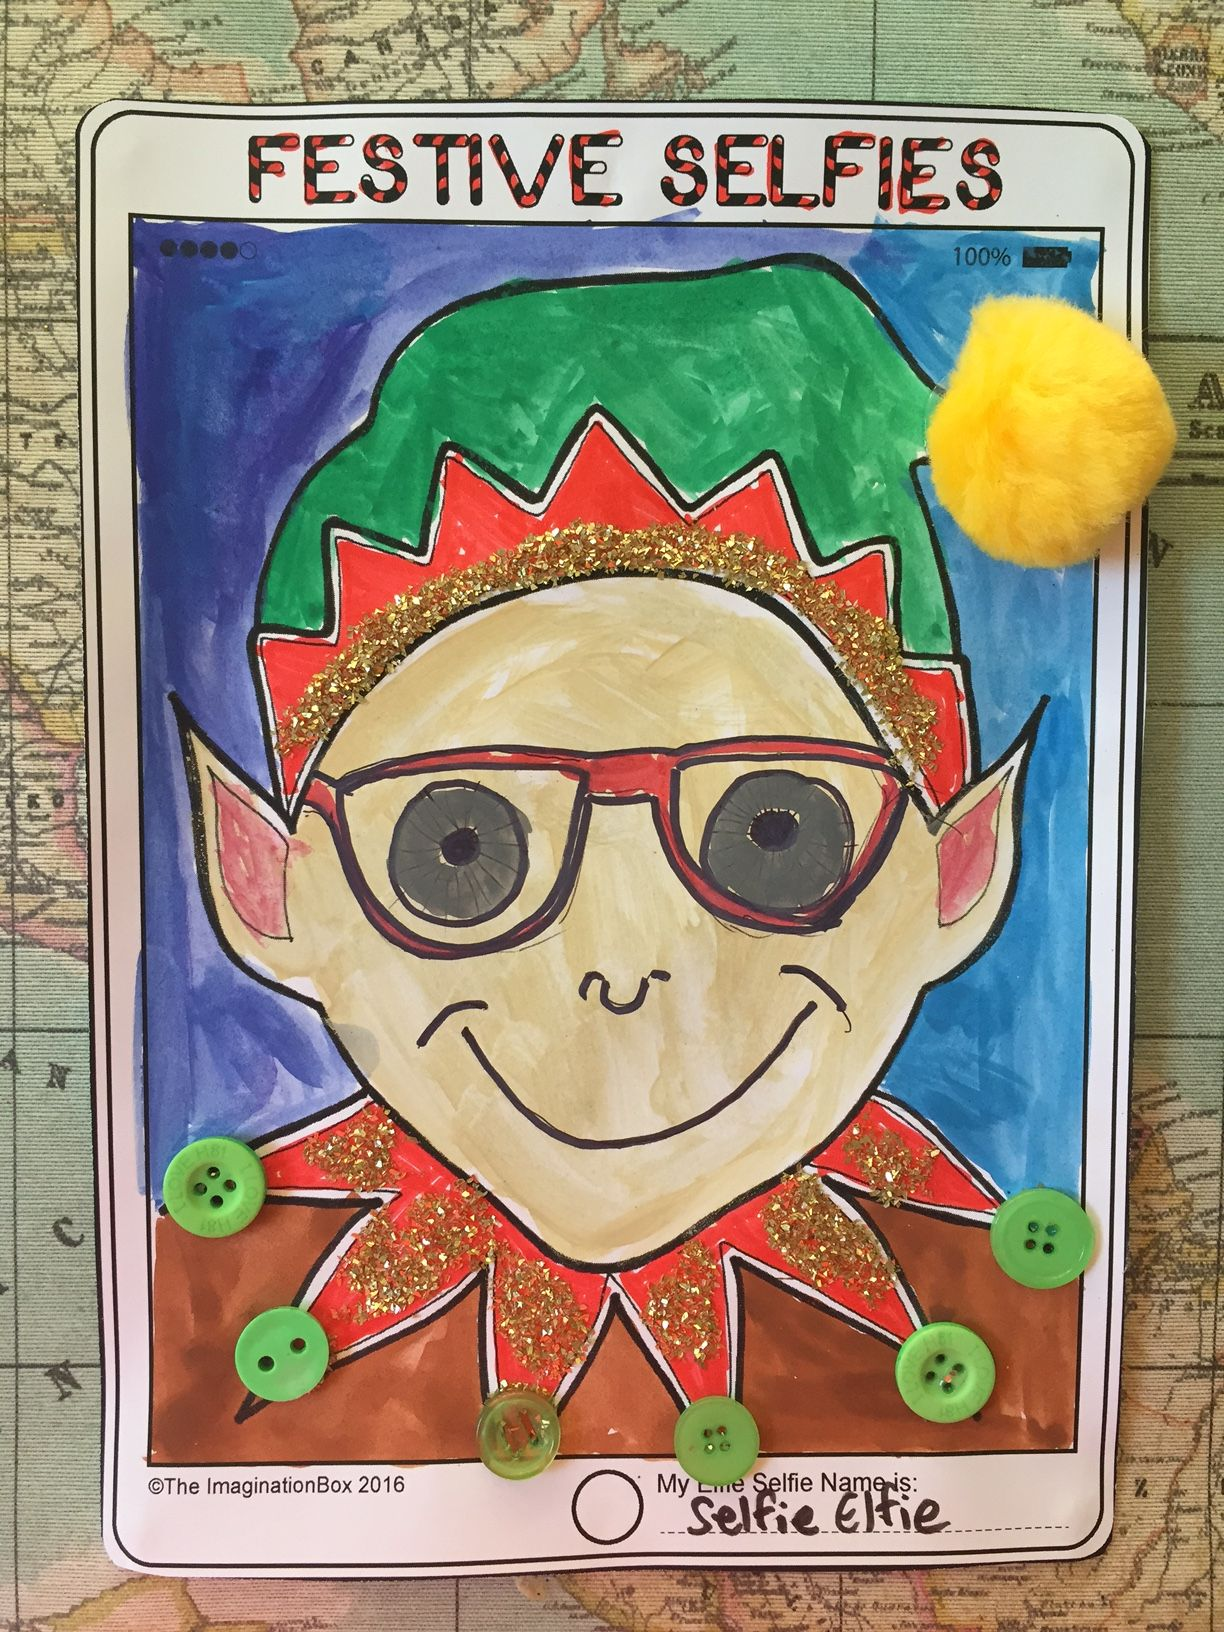 Christmas Coloring Pages  Fun Festive Selfies Art Project For